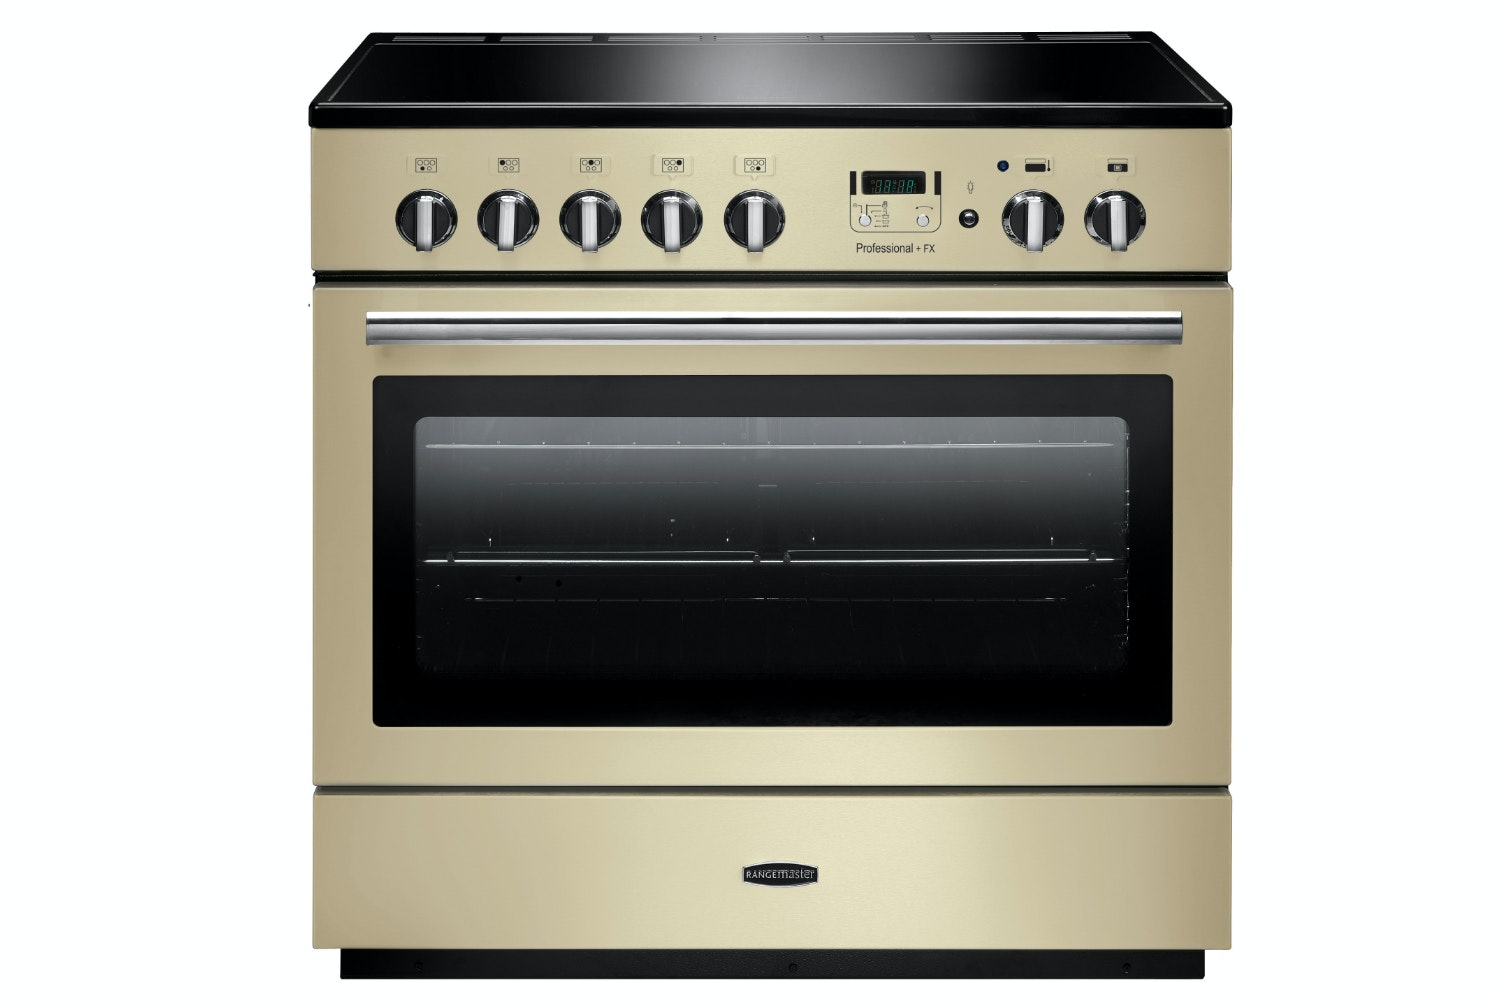 Rangemaster Pro Plus FX 90cm Electric Range Cooker | PROP90FXEICR/C | Cream